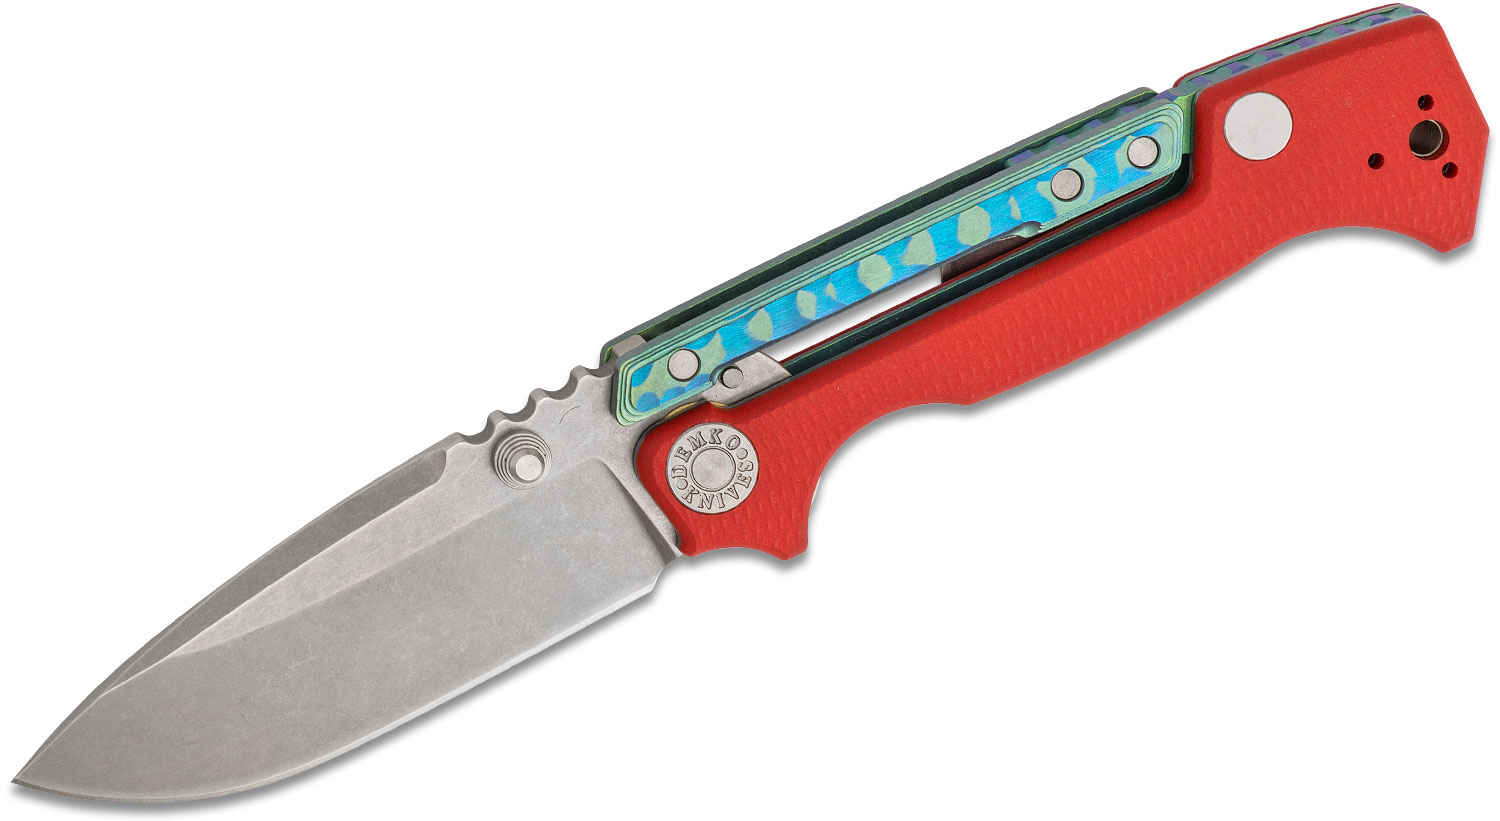 Andrew Demko Custom AD15 MG Folding Knife 3.75 inch CPM-20CV Machine Ground Blade, Red G10 and Textured Blue/Green Titanium Handles